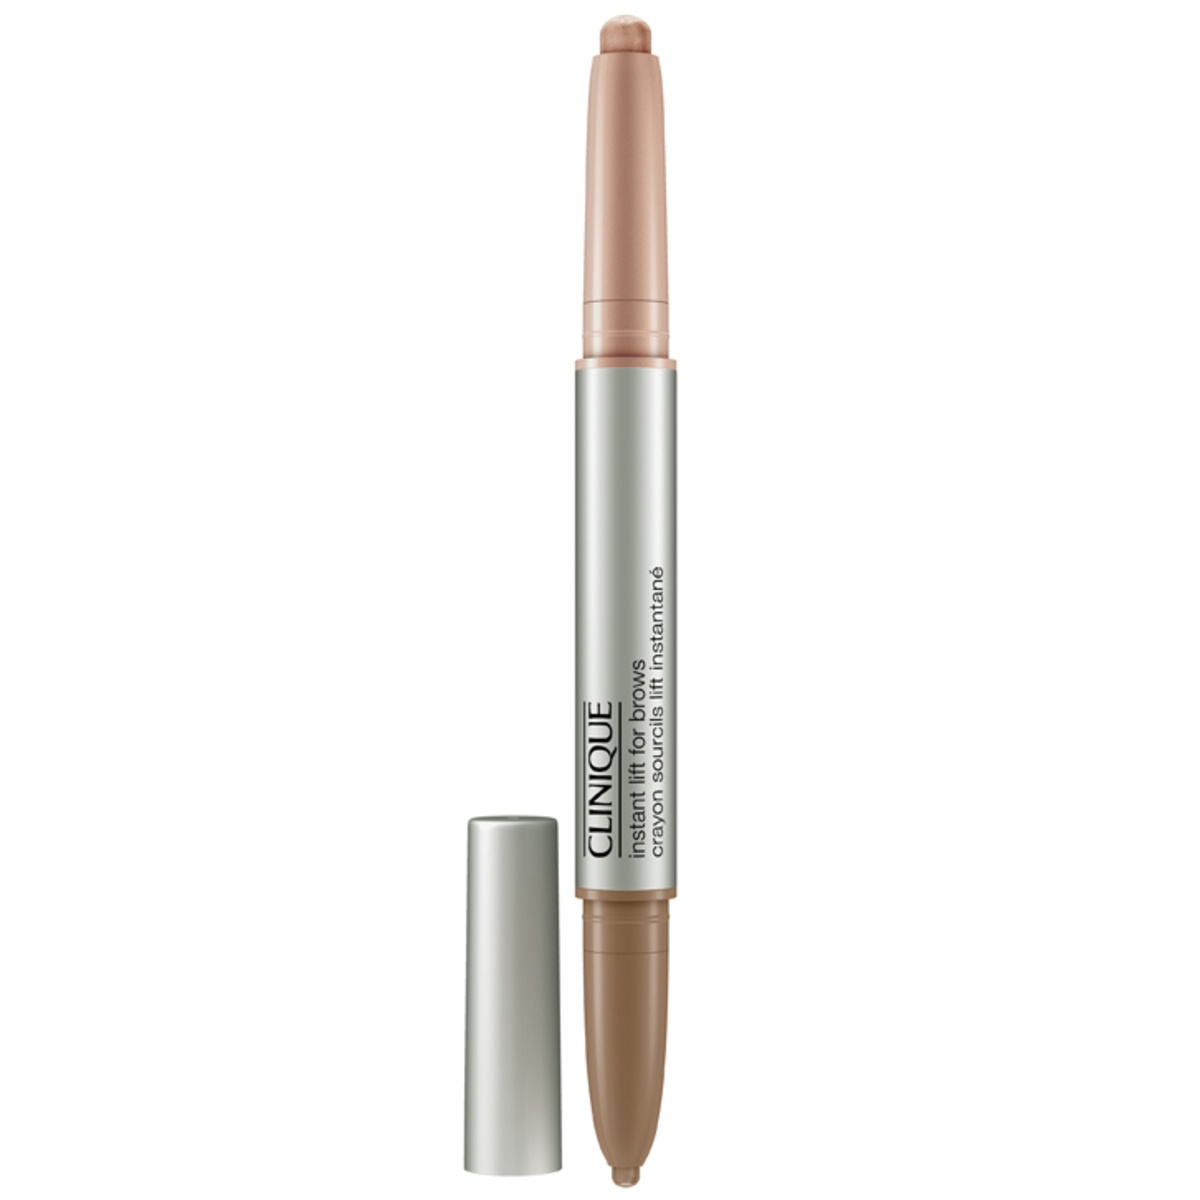 Clinique Instant Lift For Brows, soft blond